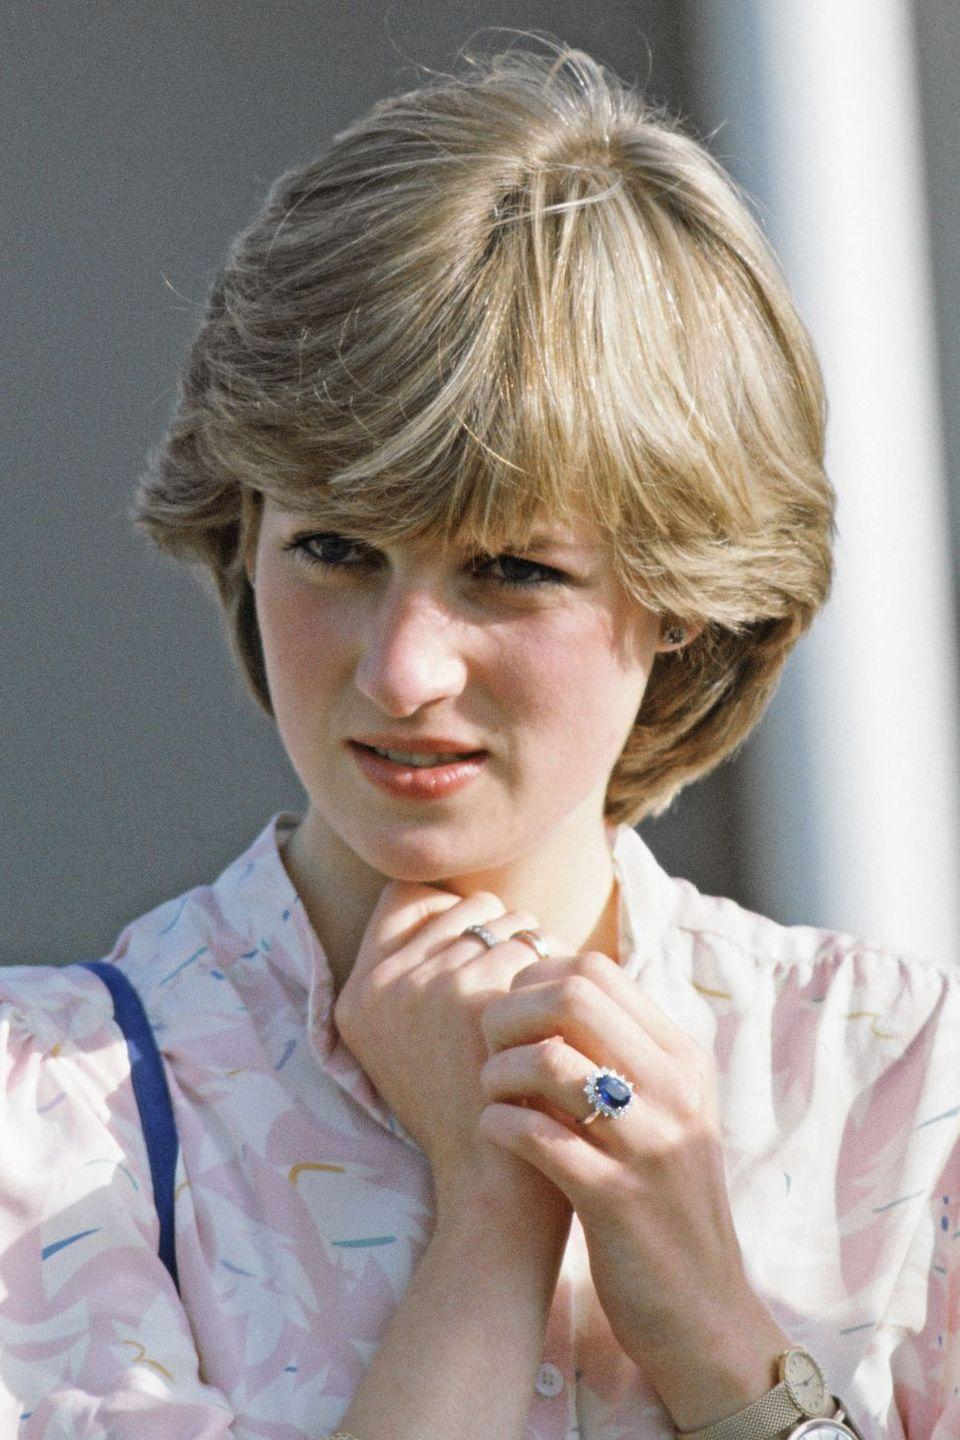 "<p>Princess Diana picked her sapphire and diamond cluster ring out of a Garrard catalog. Little did she know she'd be sparking an industry-wide trend. Not long after the royal-to-be debuted her sparkler on the lawn of Buckingham Palace, colored stone engagement rings started to make a huge comeback. </p><p><strong>RELATED</strong>: <a href=""https://www.goodhousekeeping.com/beauty/fashion/g4655/princess-diana-wedding-dress/"" rel=""nofollow noopener"" target=""_blank"" data-ylk=""slk:10 Hidden Details You Didn't Know About Princess Diana's Wedding Dress"" class=""link rapid-noclick-resp"">10 Hidden Details You Didn't Know About Princess Diana's Wedding Dress</a></p>"